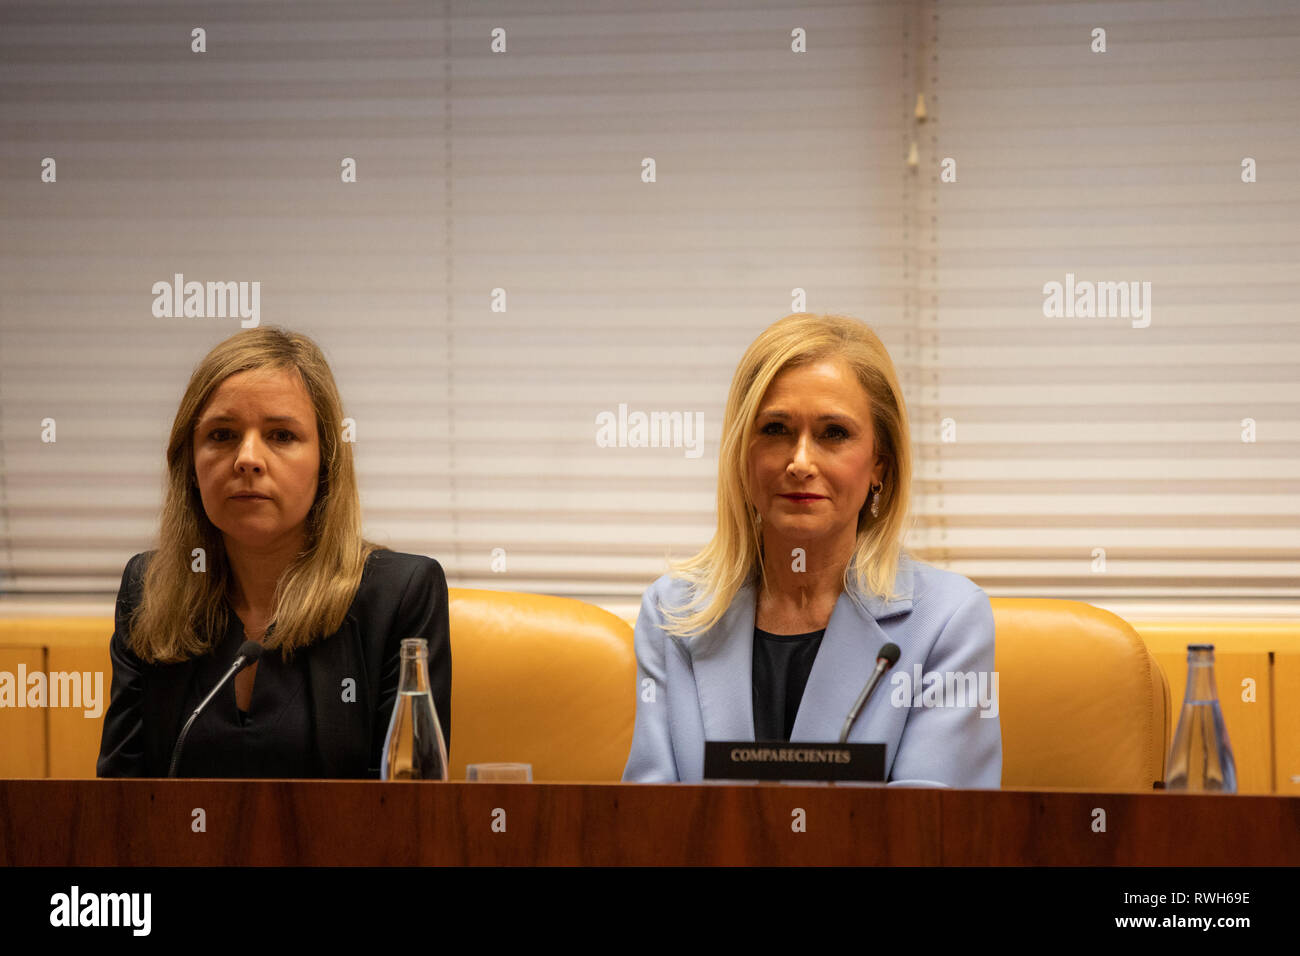 The former president of the Community of Madrid Cristina Cifuentes (R) with her lawyer(L) are seen attending the research commission of universities of the Assembly of Madrid to appear in relation to the case Master, which is investigated for alleged crime of falsification of documents. - Stock Image